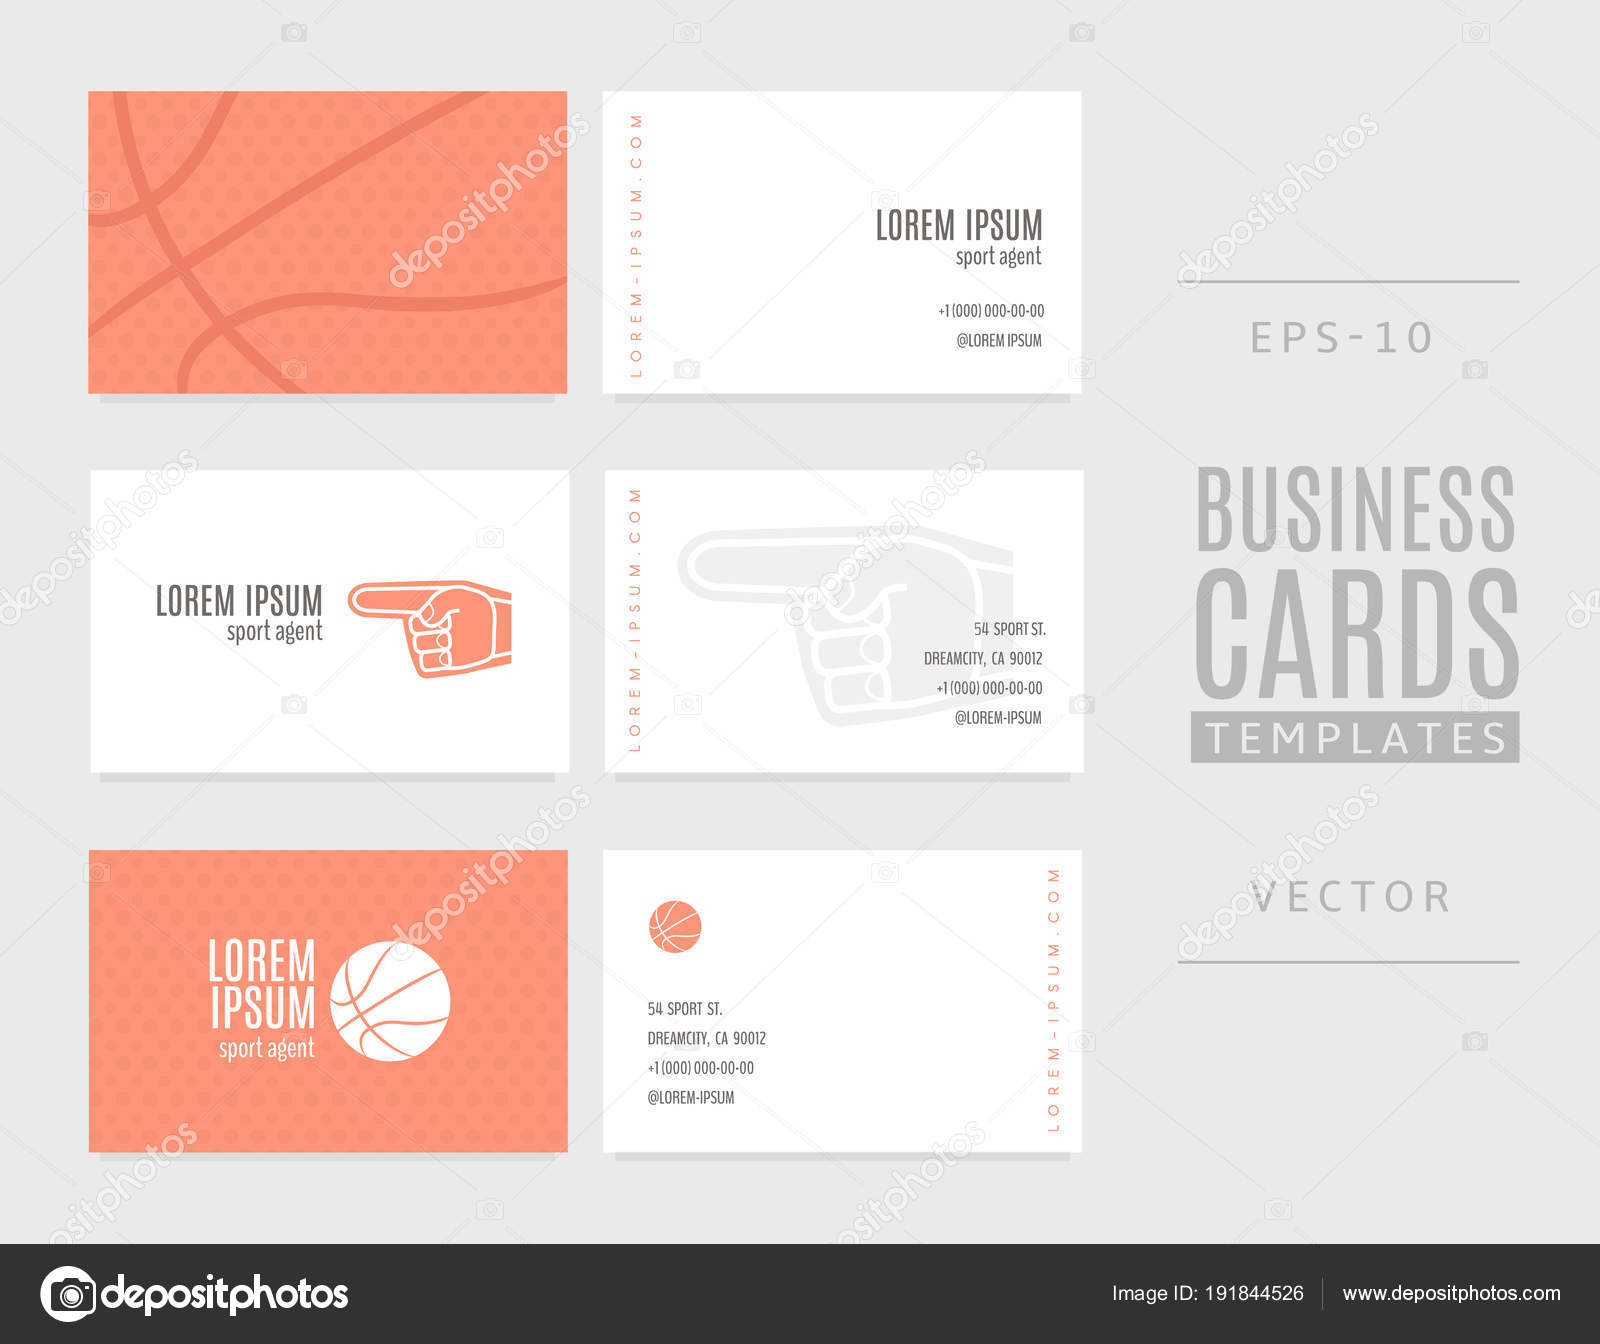 Basketball business cards. A good idea for sports agents, coaches ...